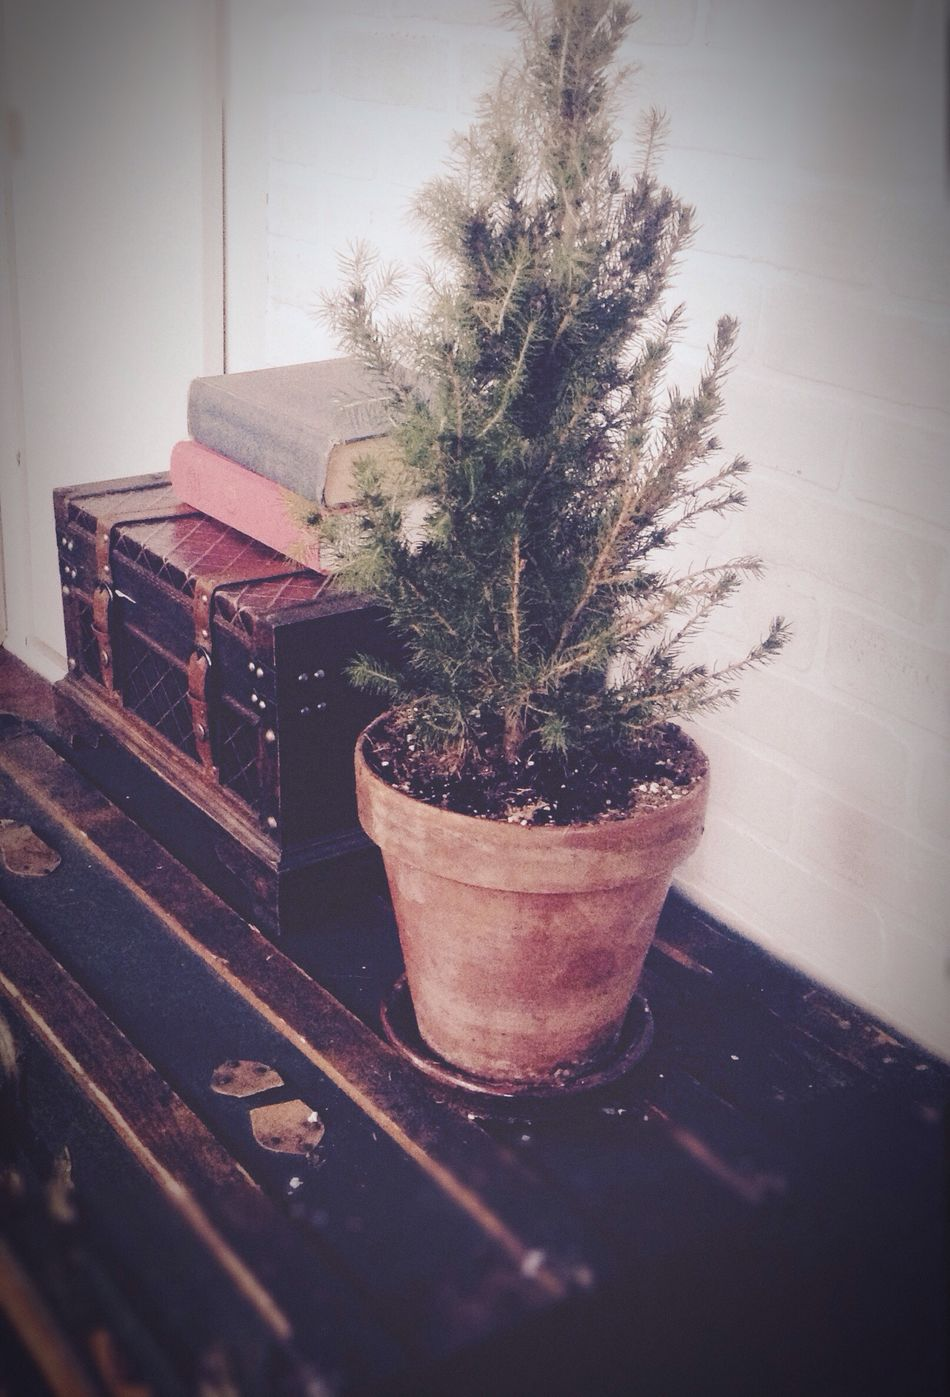 Trunks, books and a pine tree. Home Tree Pine Trunk Books Brick Wall Pieces Of Home Bits And Pieces